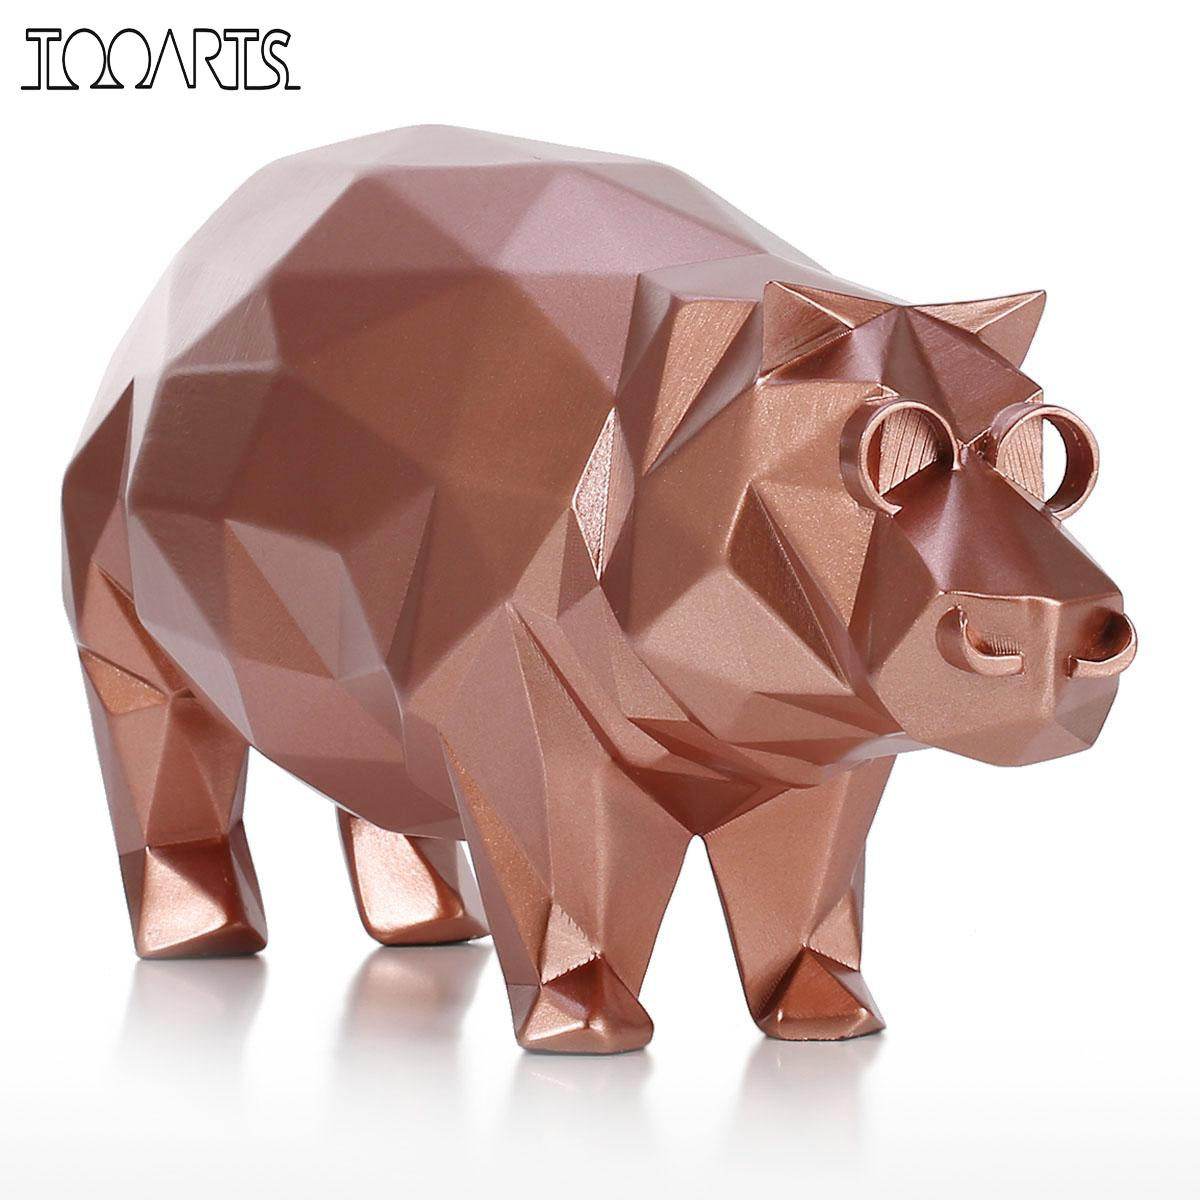 Tooarts Tomfeel Hippo Modern Sculpture Resin Sculpture Abstract Sculpture Animal Figurine Statues for Decoration Handmade Crafts